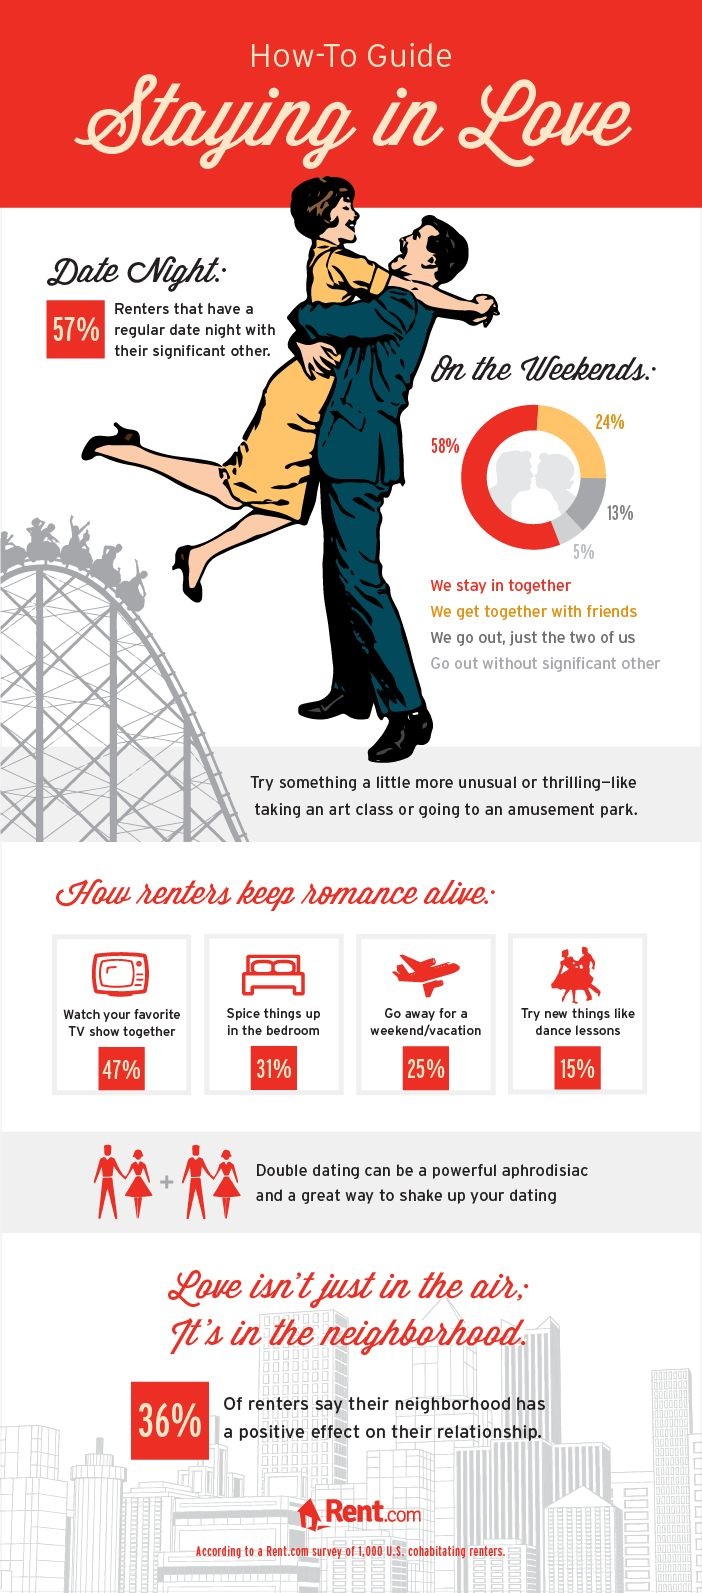 How to Guide: Staying in Love Infographic